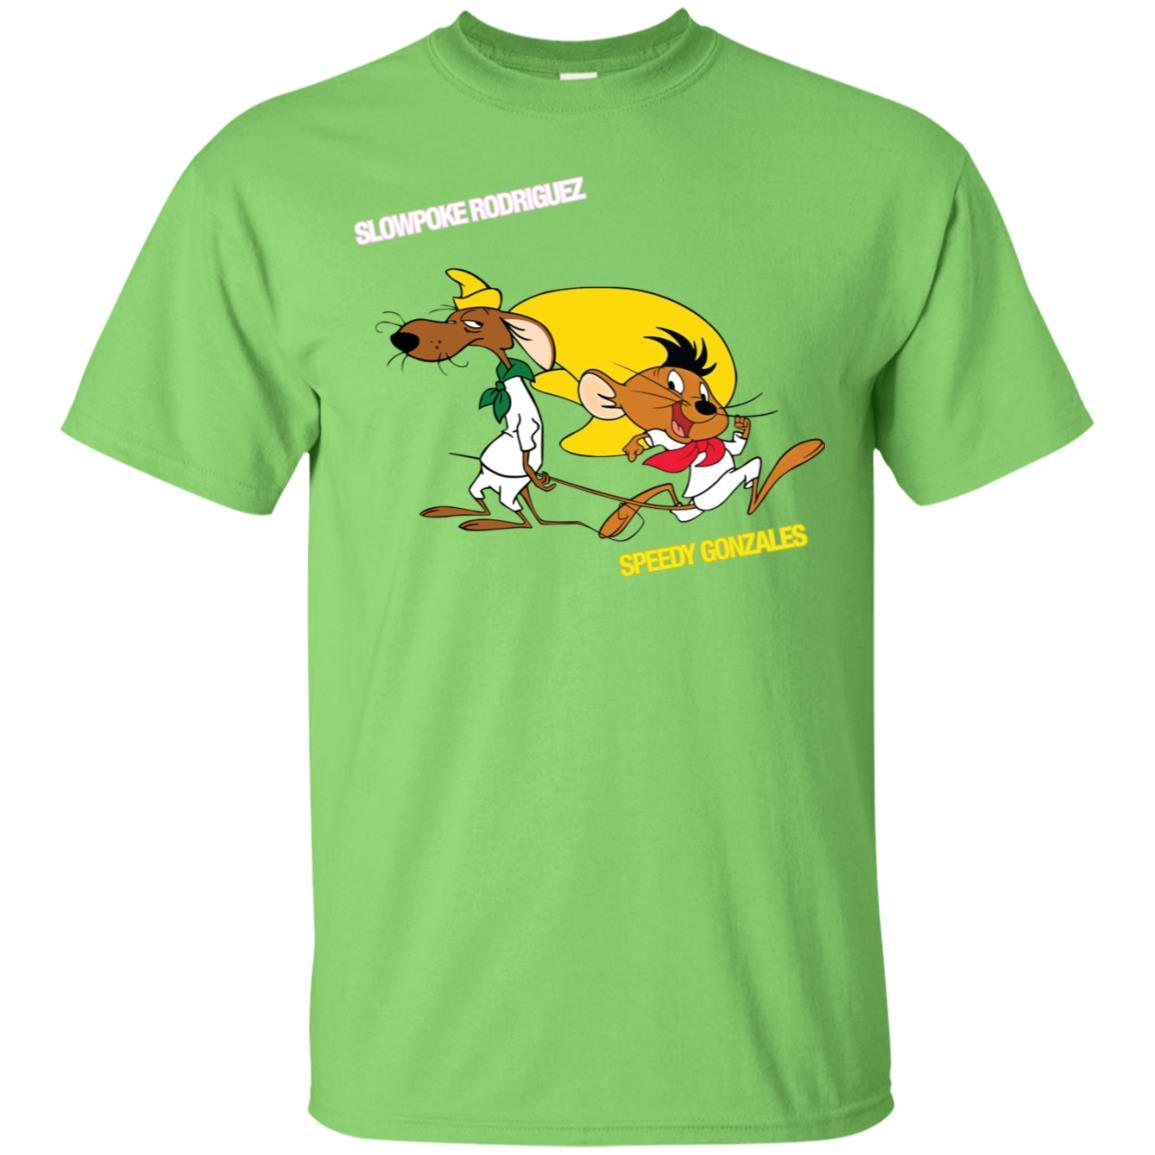 Slowpoke Rodriguez Speedy Gonzalez Funny Vintage Cartoon Tee T-Shirt G200 Gildan Ultra Cotton T-Shirt / Lime / 3XL